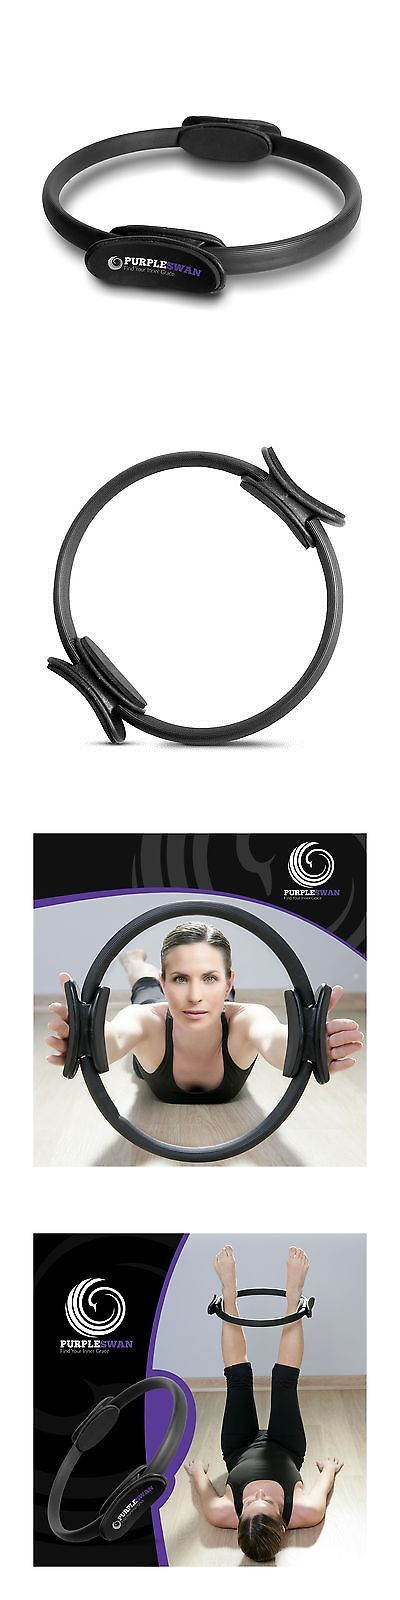 Pilates Rings 179808: Pilates Ring Fitness Circle - Premium Resistance Powered Full Body Toning F... -> BUY IT NOW ONLY: $36.88 on eBay!